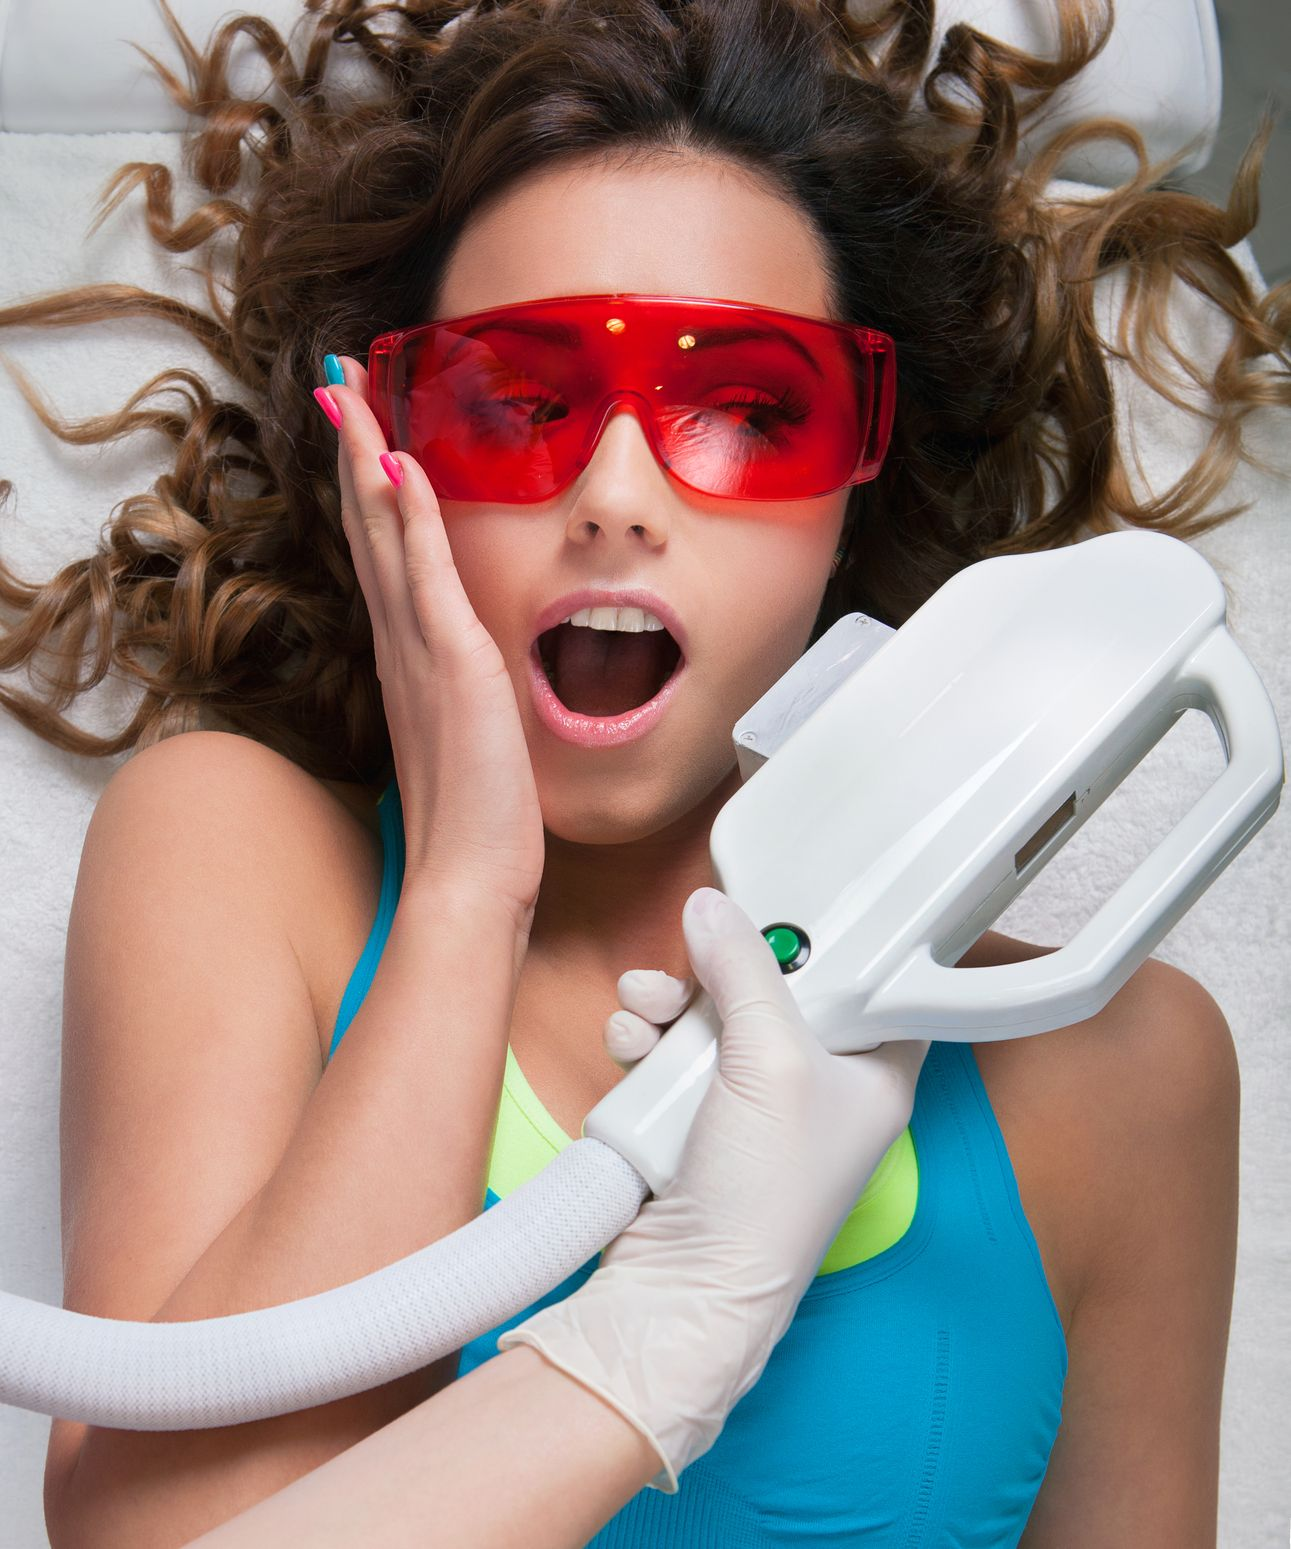 Young woman having laser hair removal treatment